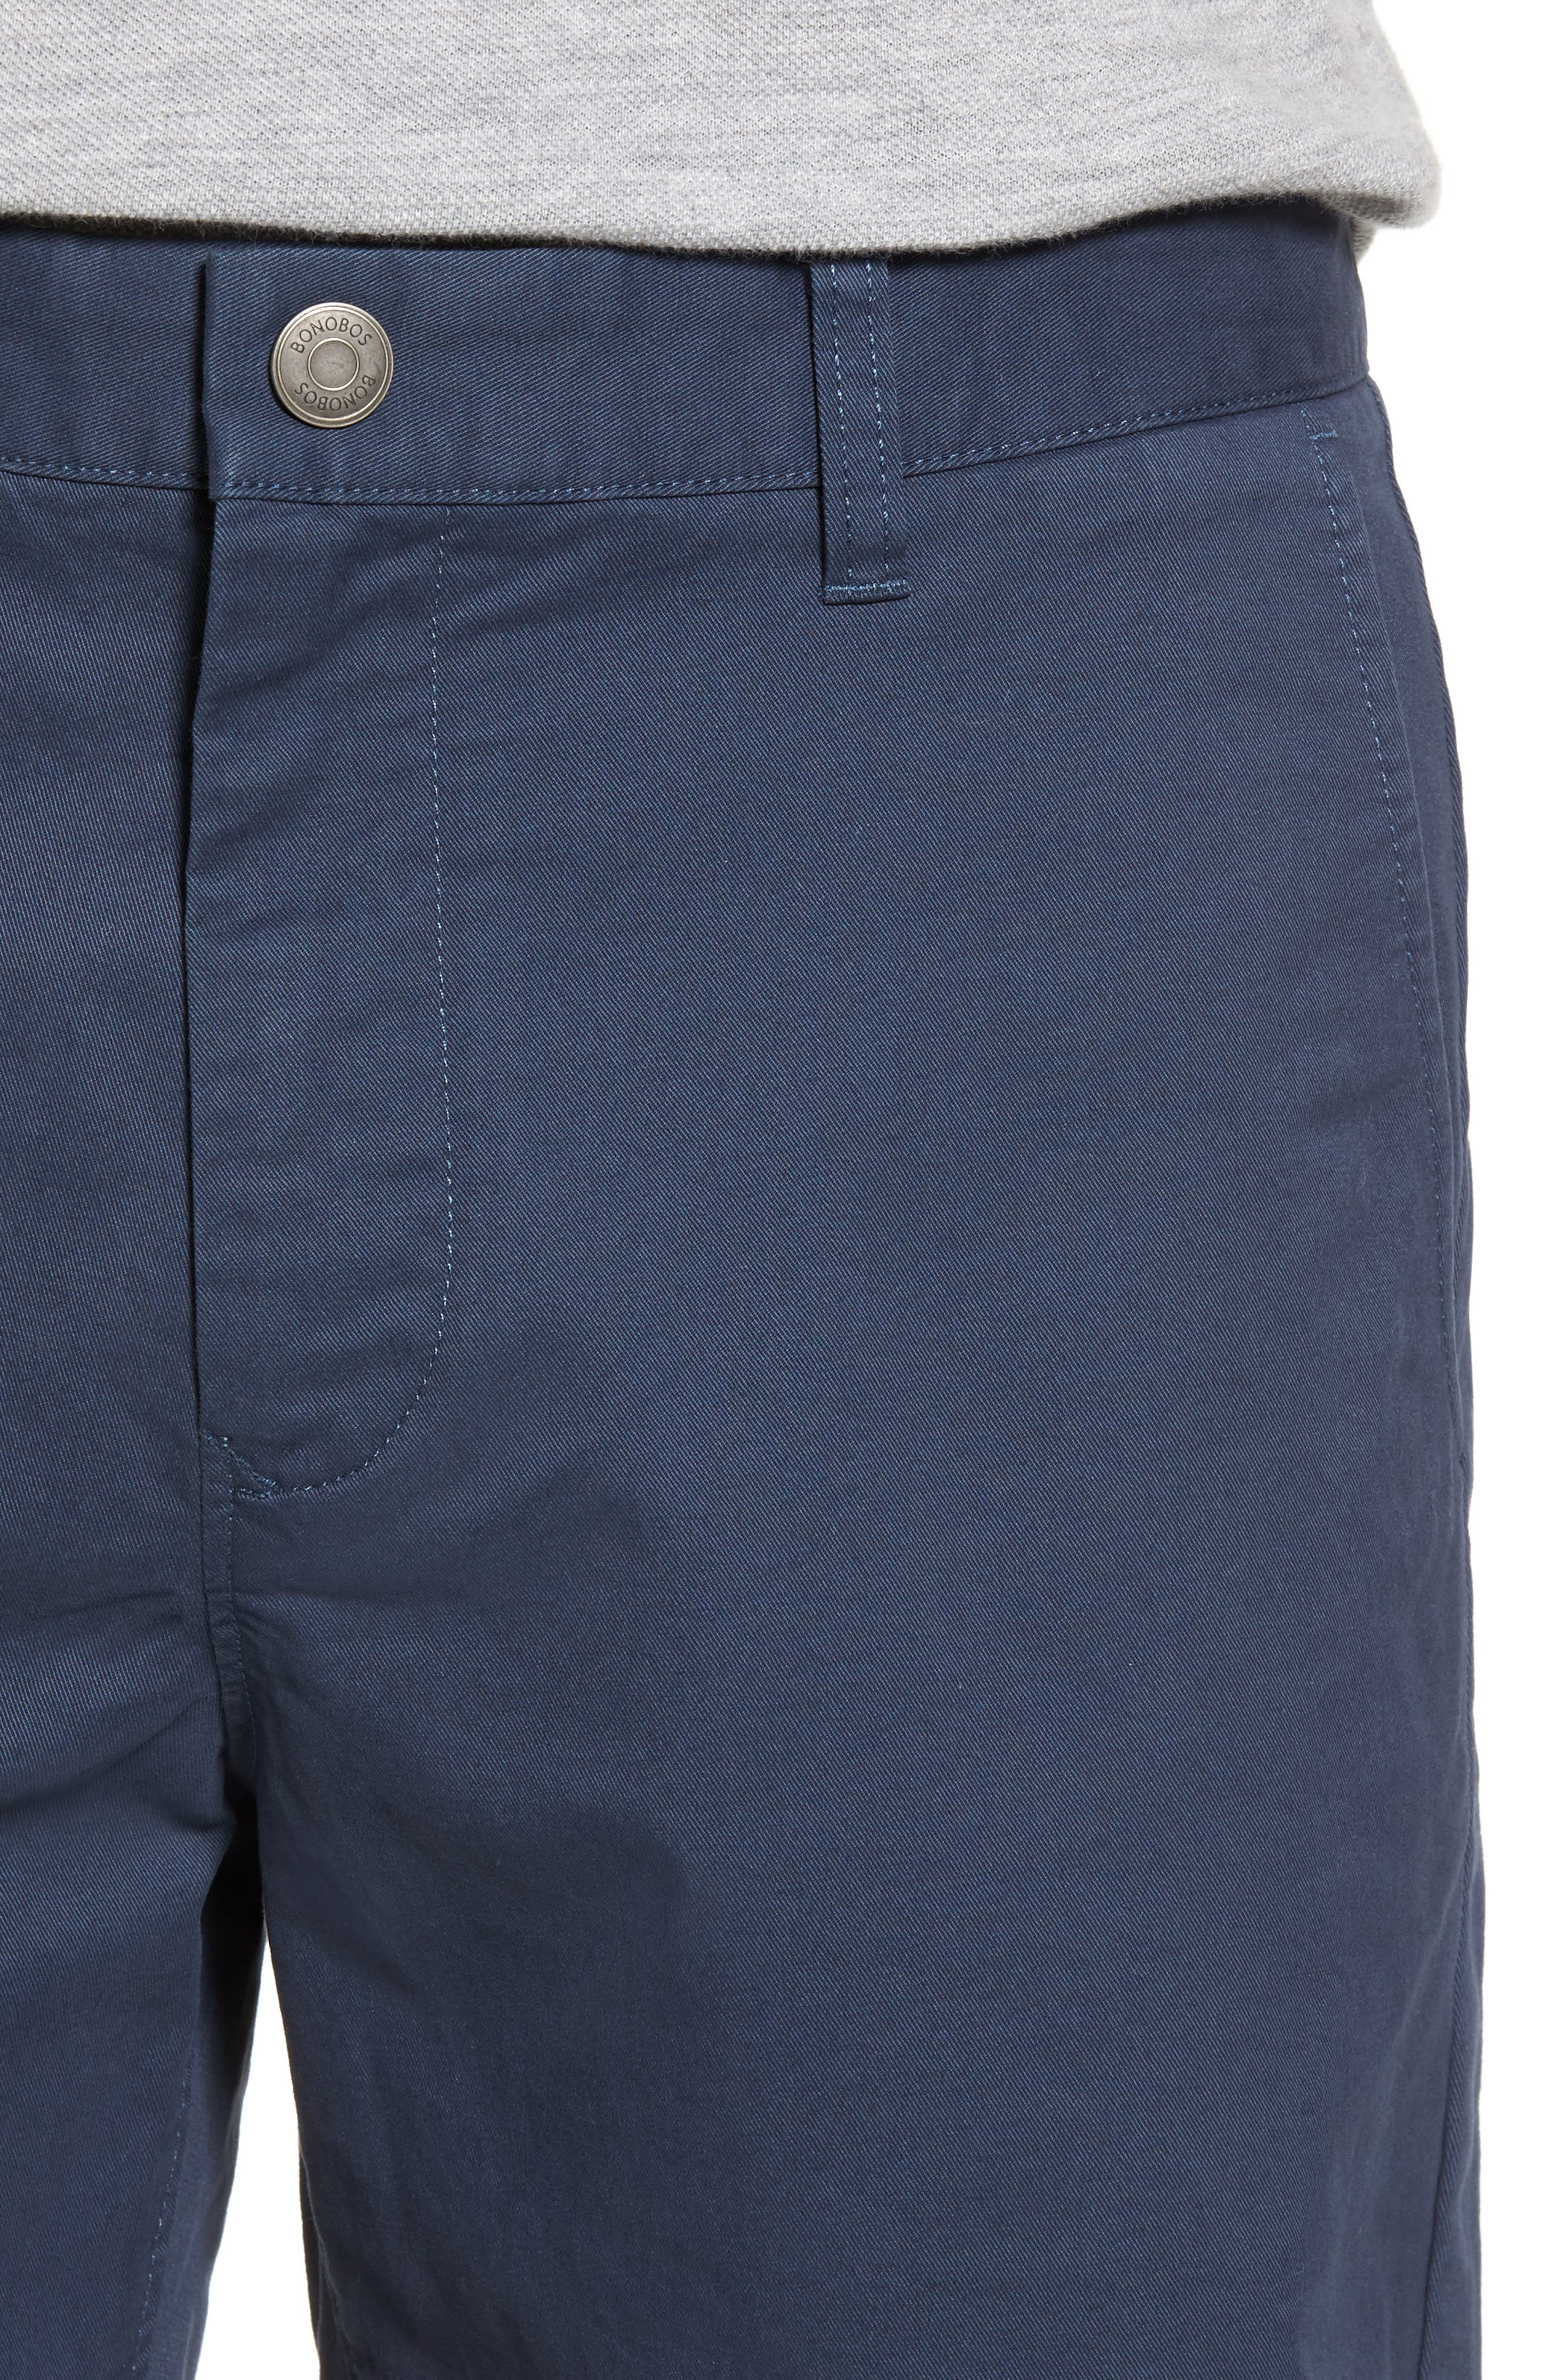 Stretch Washed Chino 5-Inch Shorts,                             Alternate thumbnail 96, color,